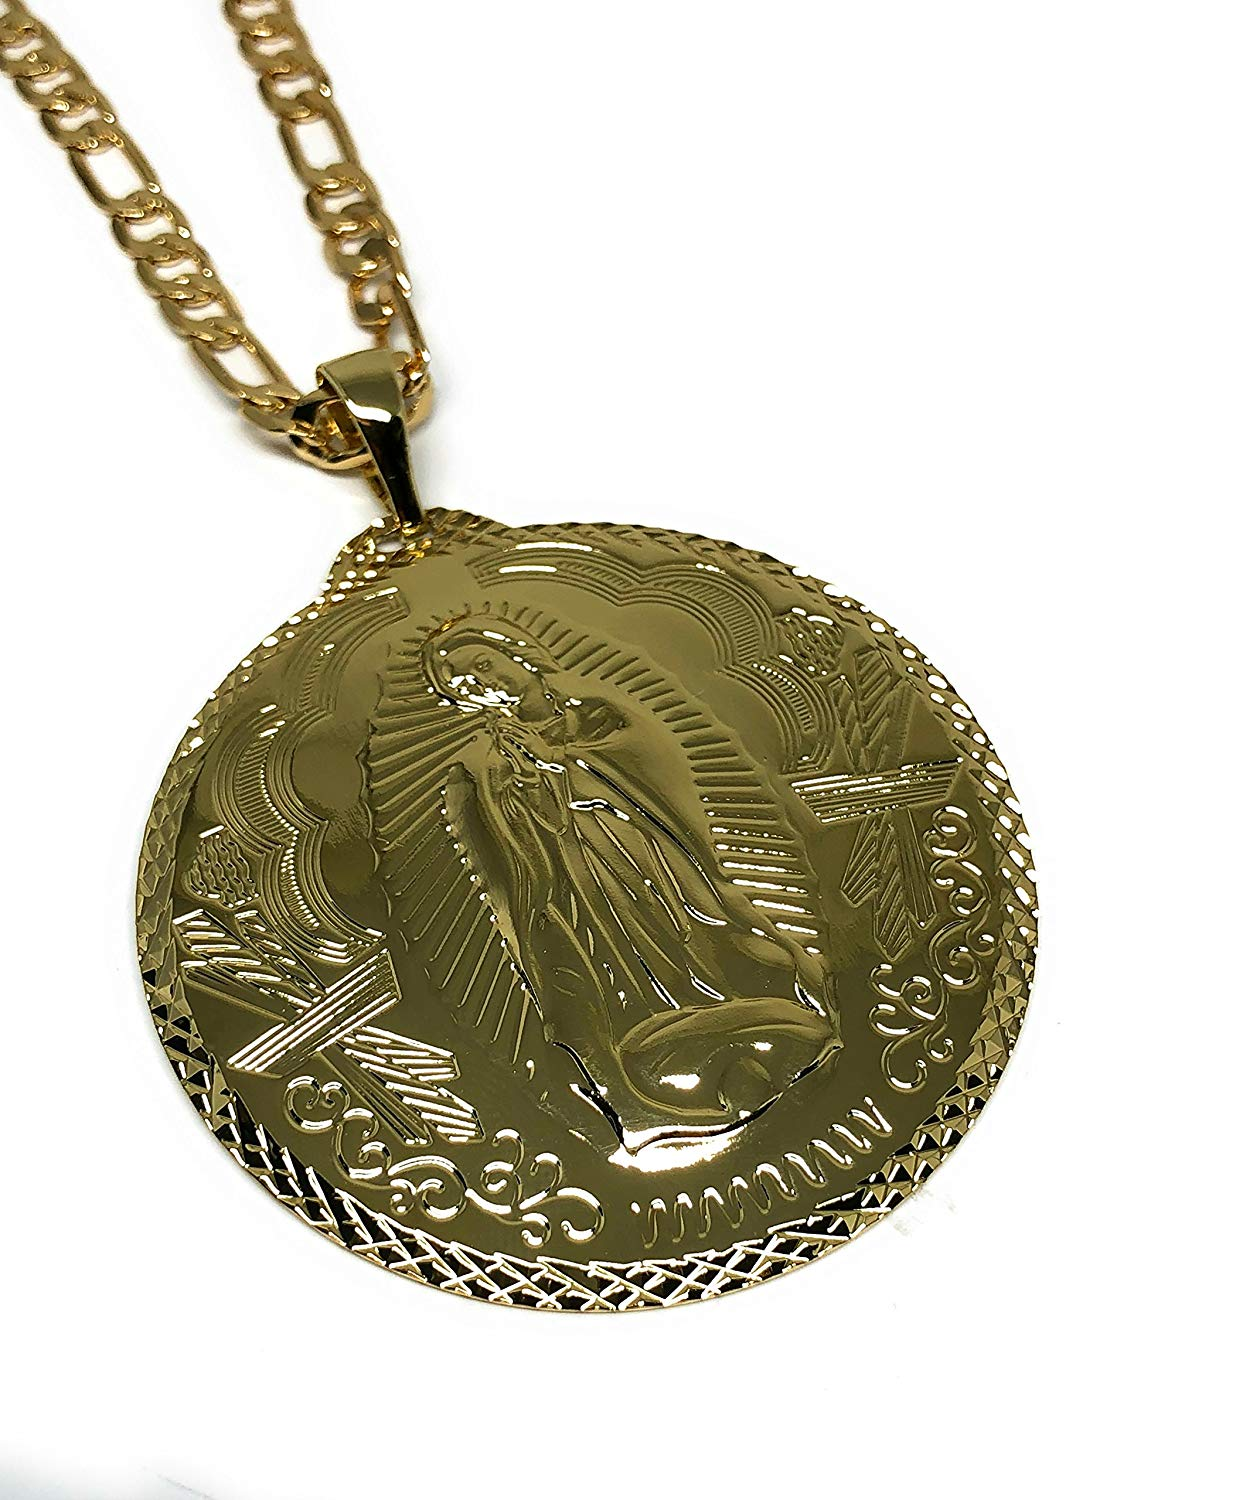 "Gold Plated Big XL Virgin Mary Pendant / Virgen Guadalupe XL Grande Medalla Pendant Necklace Chain 26"" - Fran & Co. Jewelry"